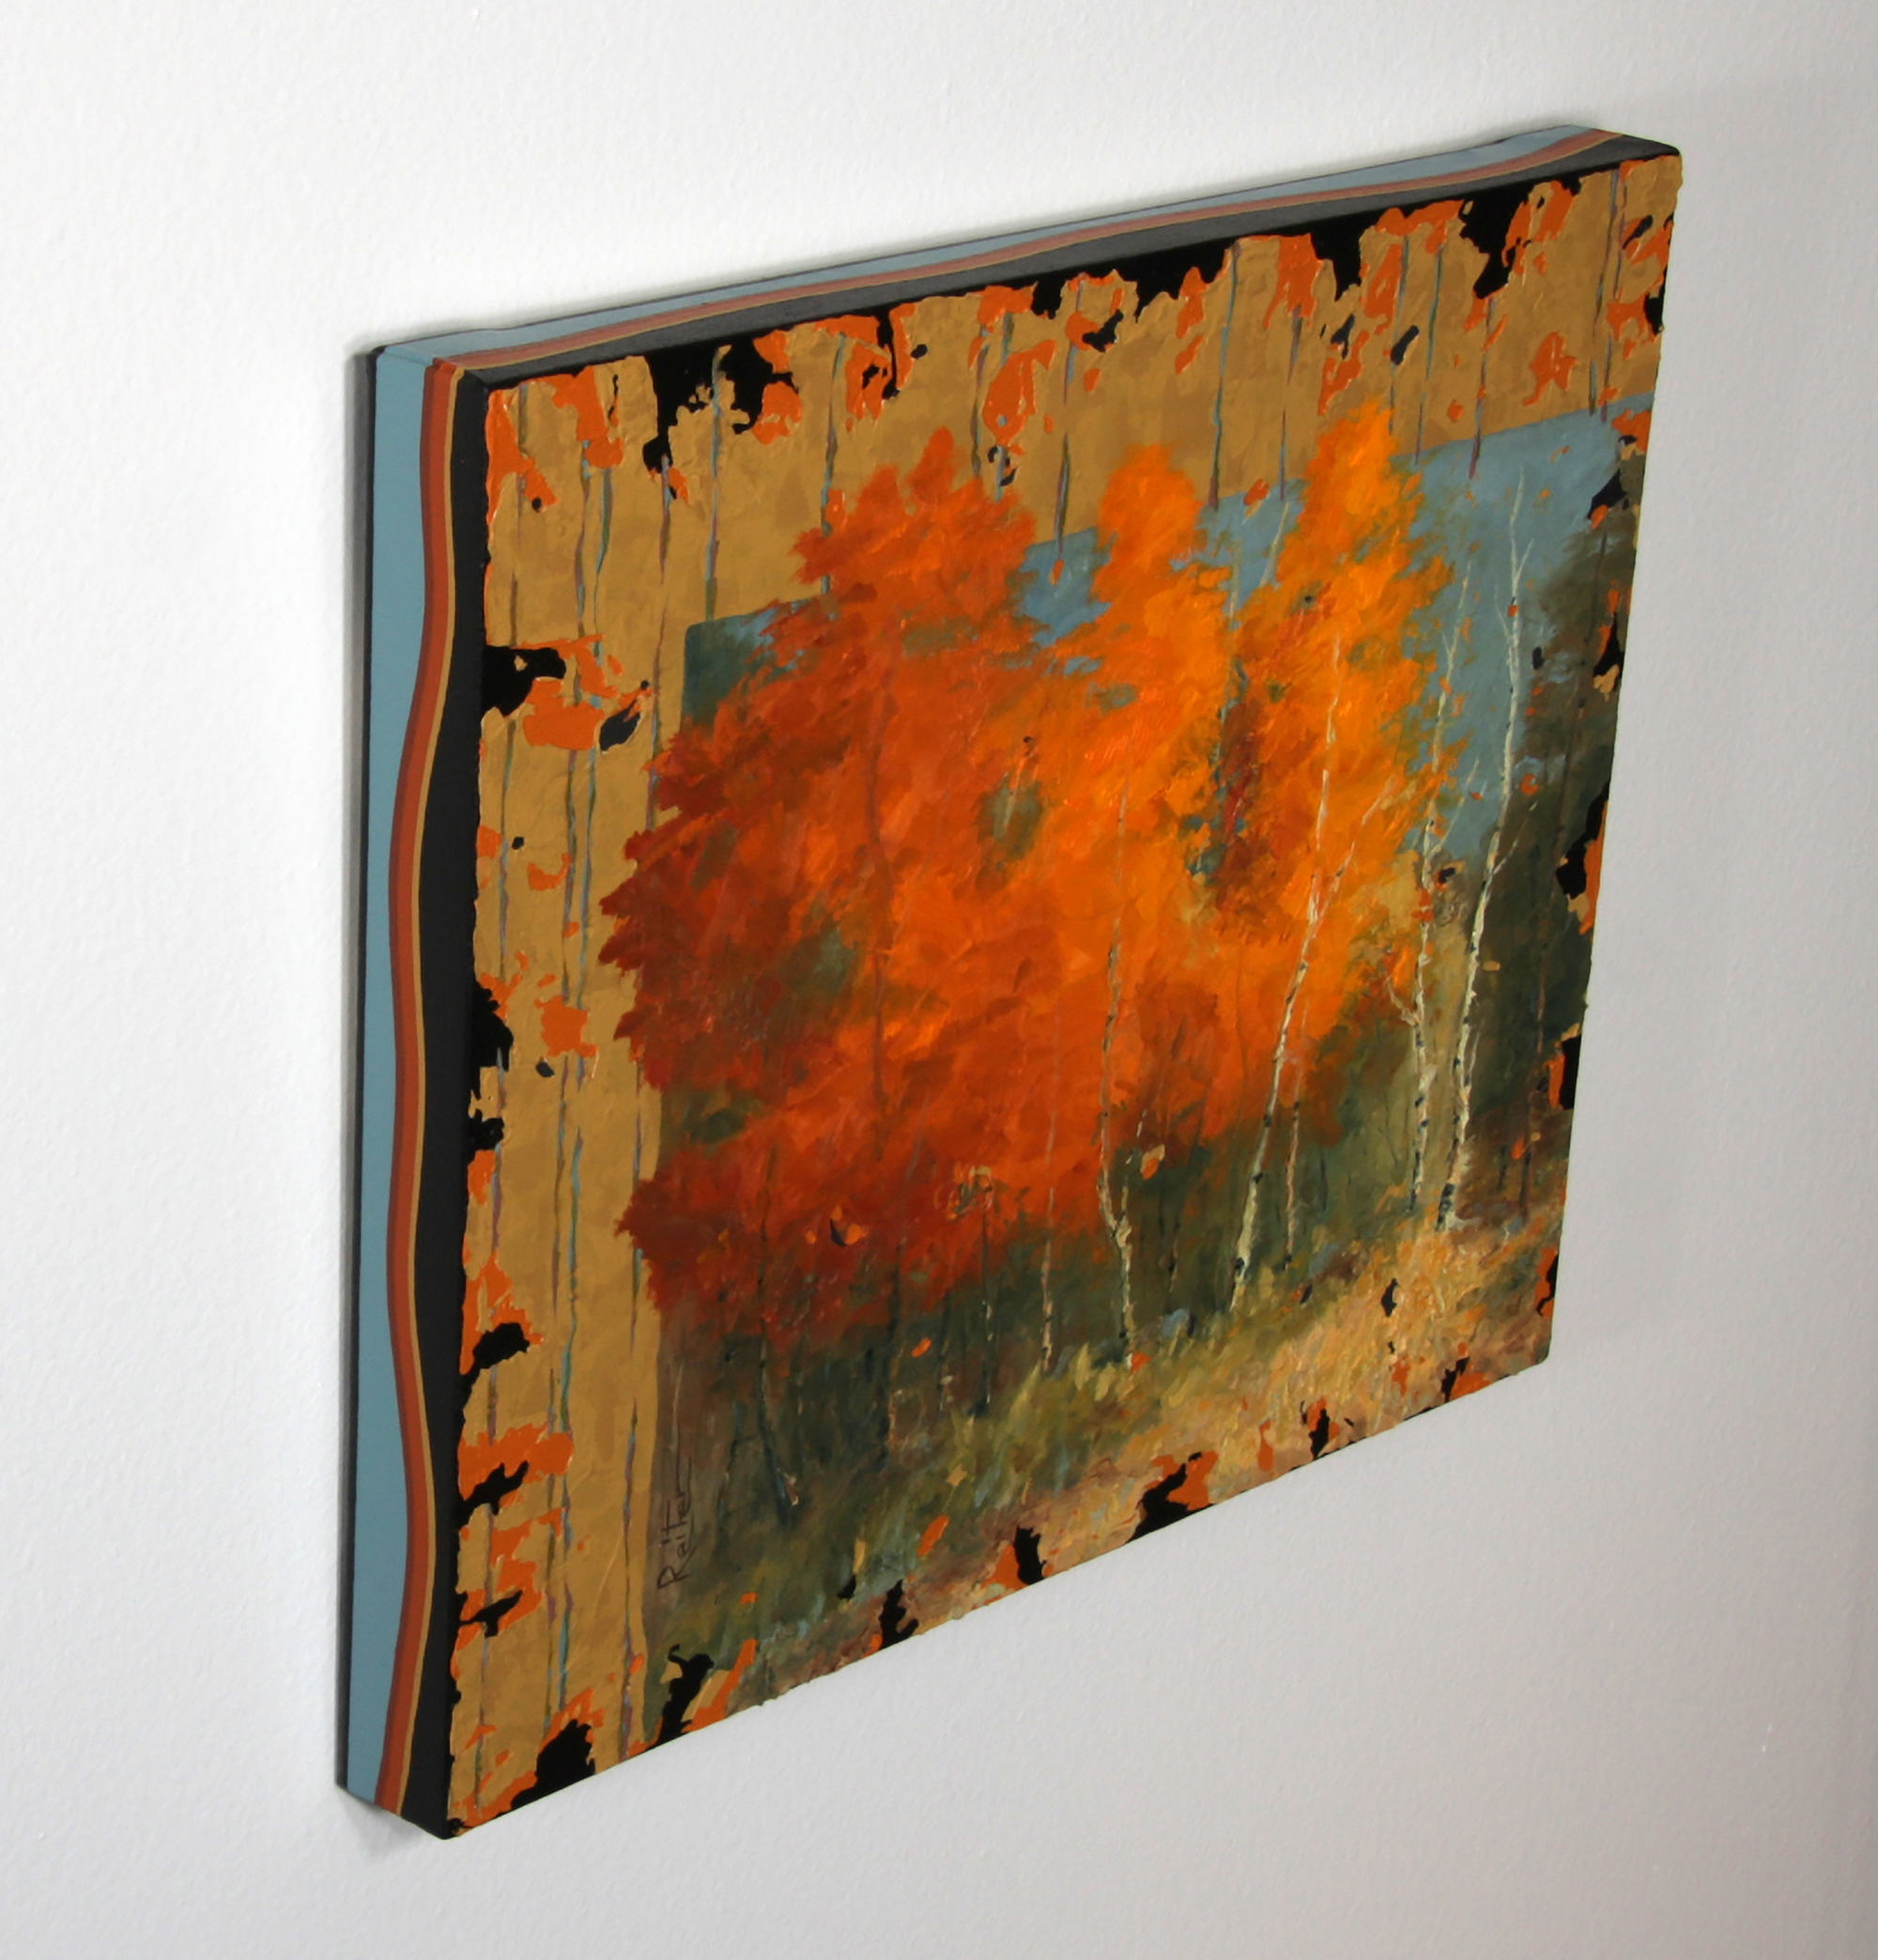 Fall Explosion by Dave Reiter   ArtworkNetwork.com